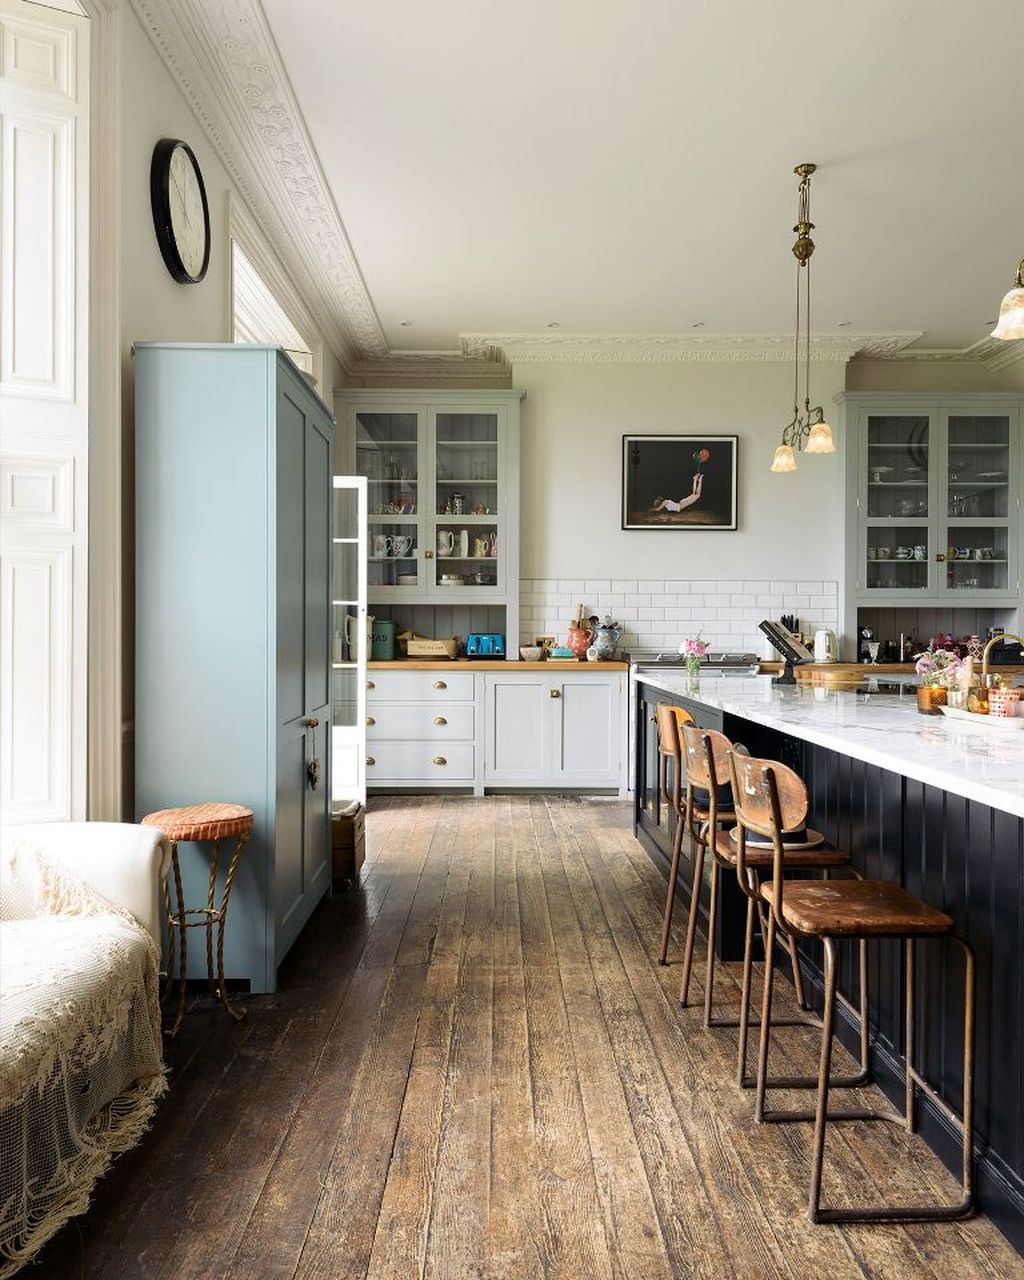 Fascinating Kitchen Design Ideas With Victorian Style 21